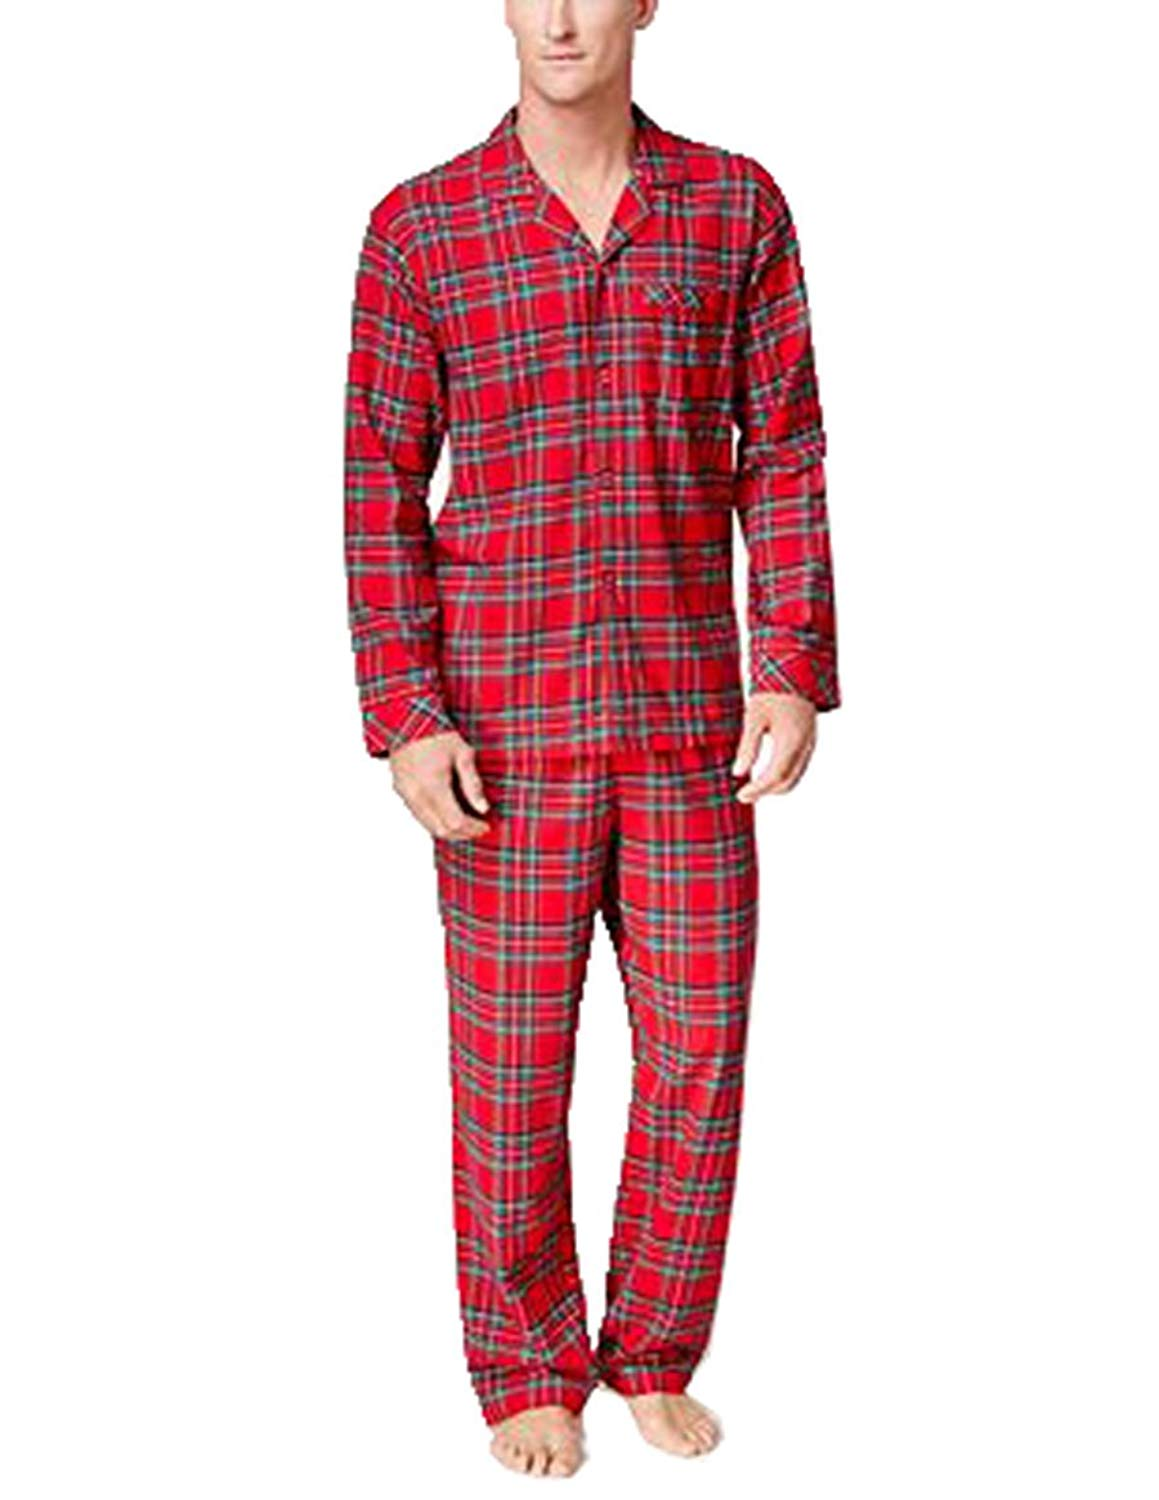 978e4134be Get Quotations · FAMILY PJS-MMG Family Pajamas Family Pajamas Mens Brinkley  Brinkley Plaid M